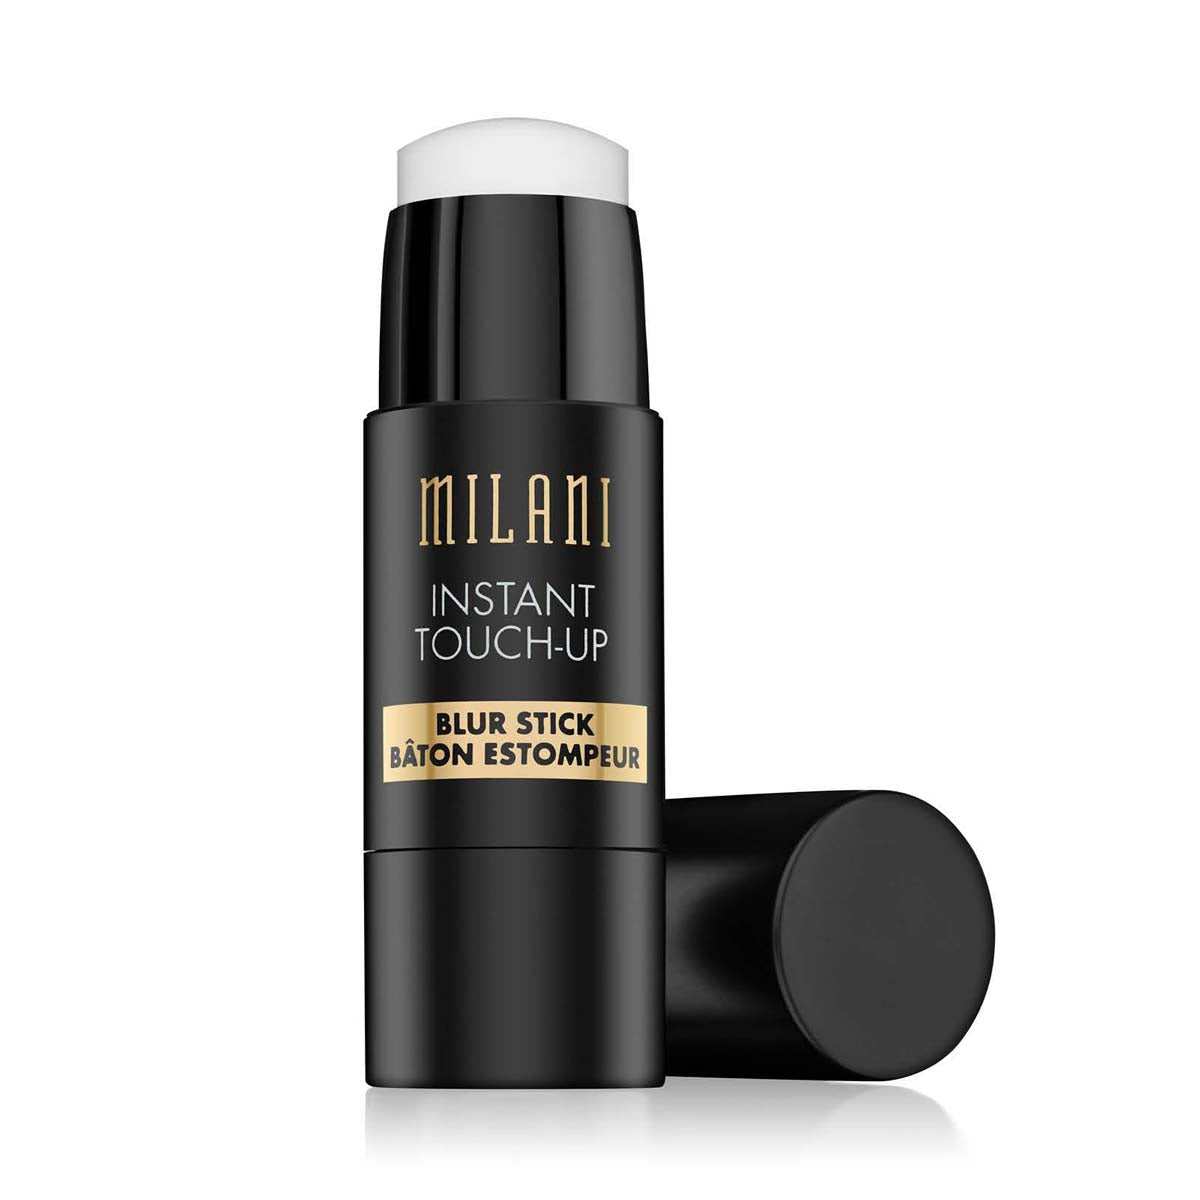 MILANI Instant Touch-Up Blur Stick - Transparent | HODIVA SHOP